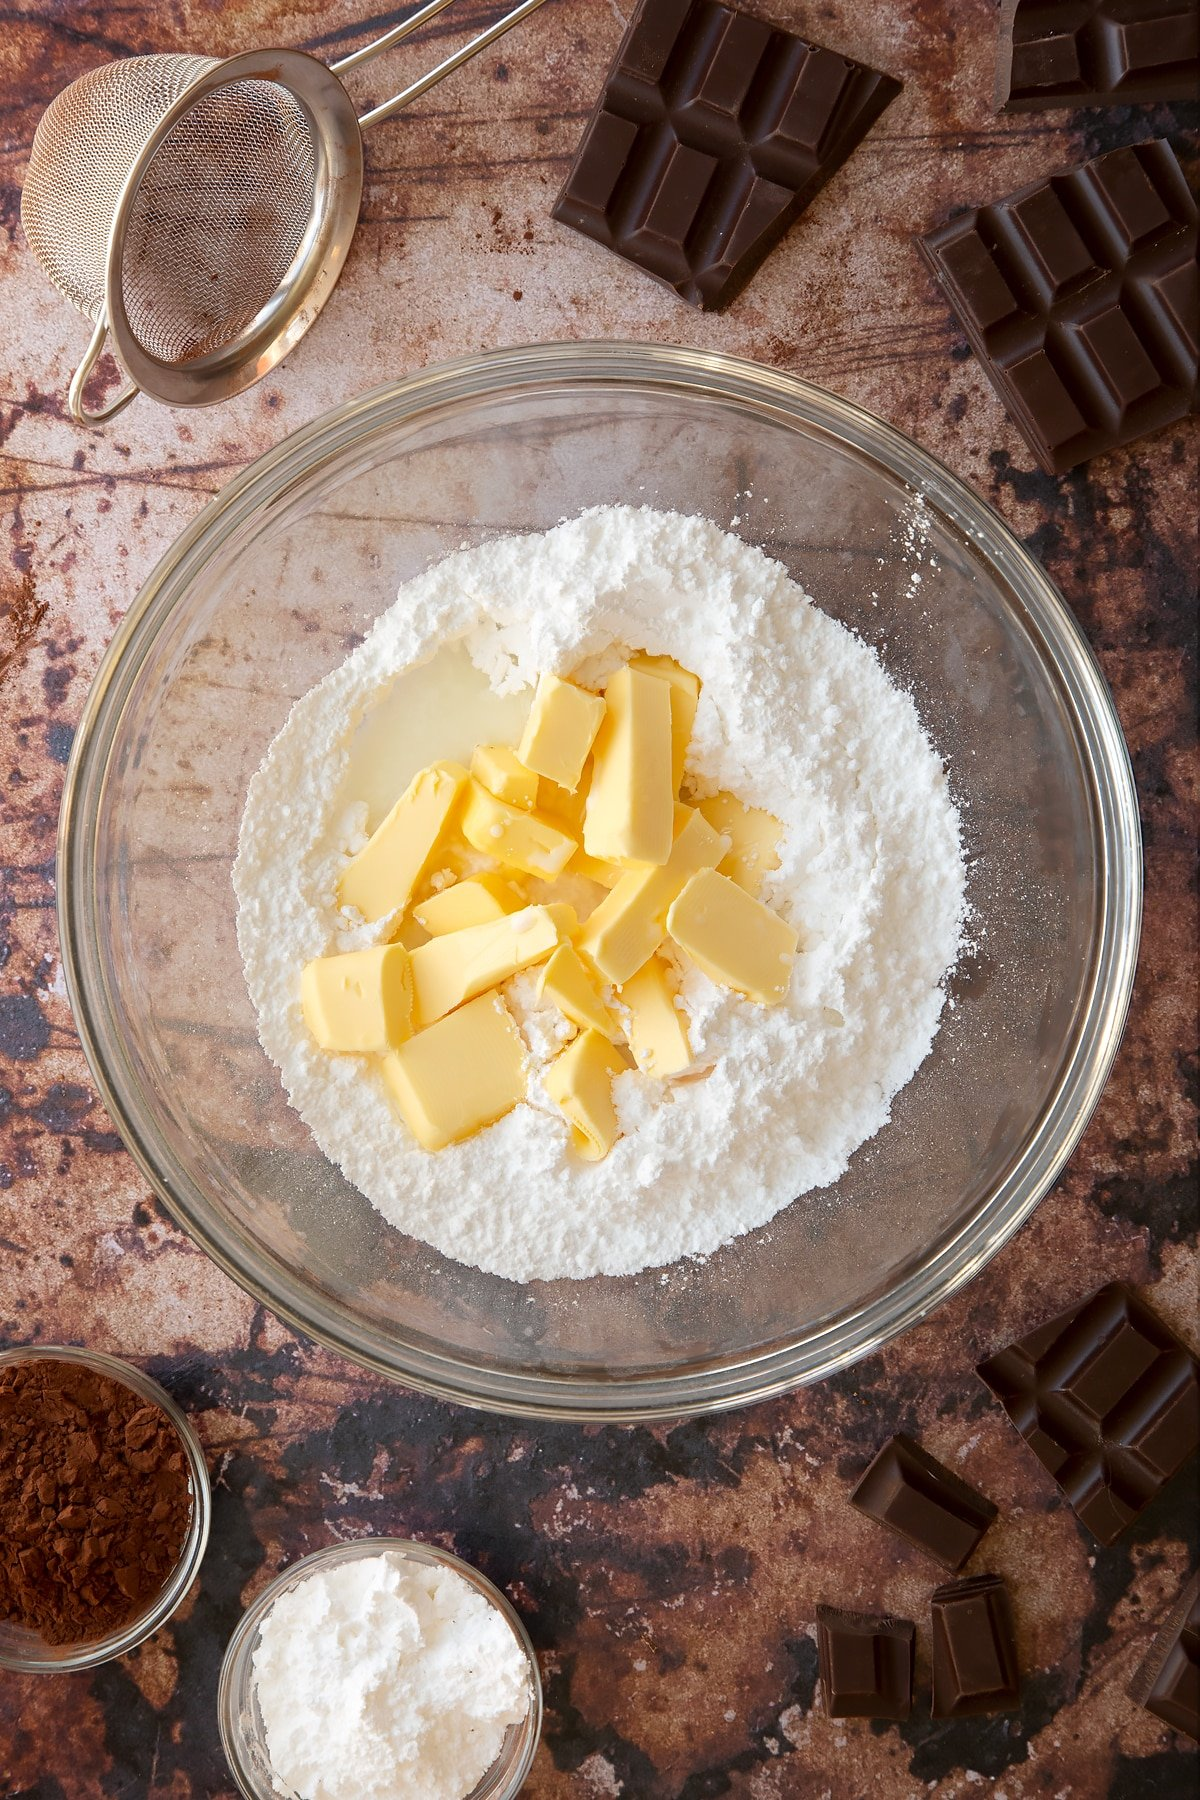 Butter, vanilla, milk and icing sugar in a bowl. Ingredients to make chocolate Swiss roll surround the bowl.